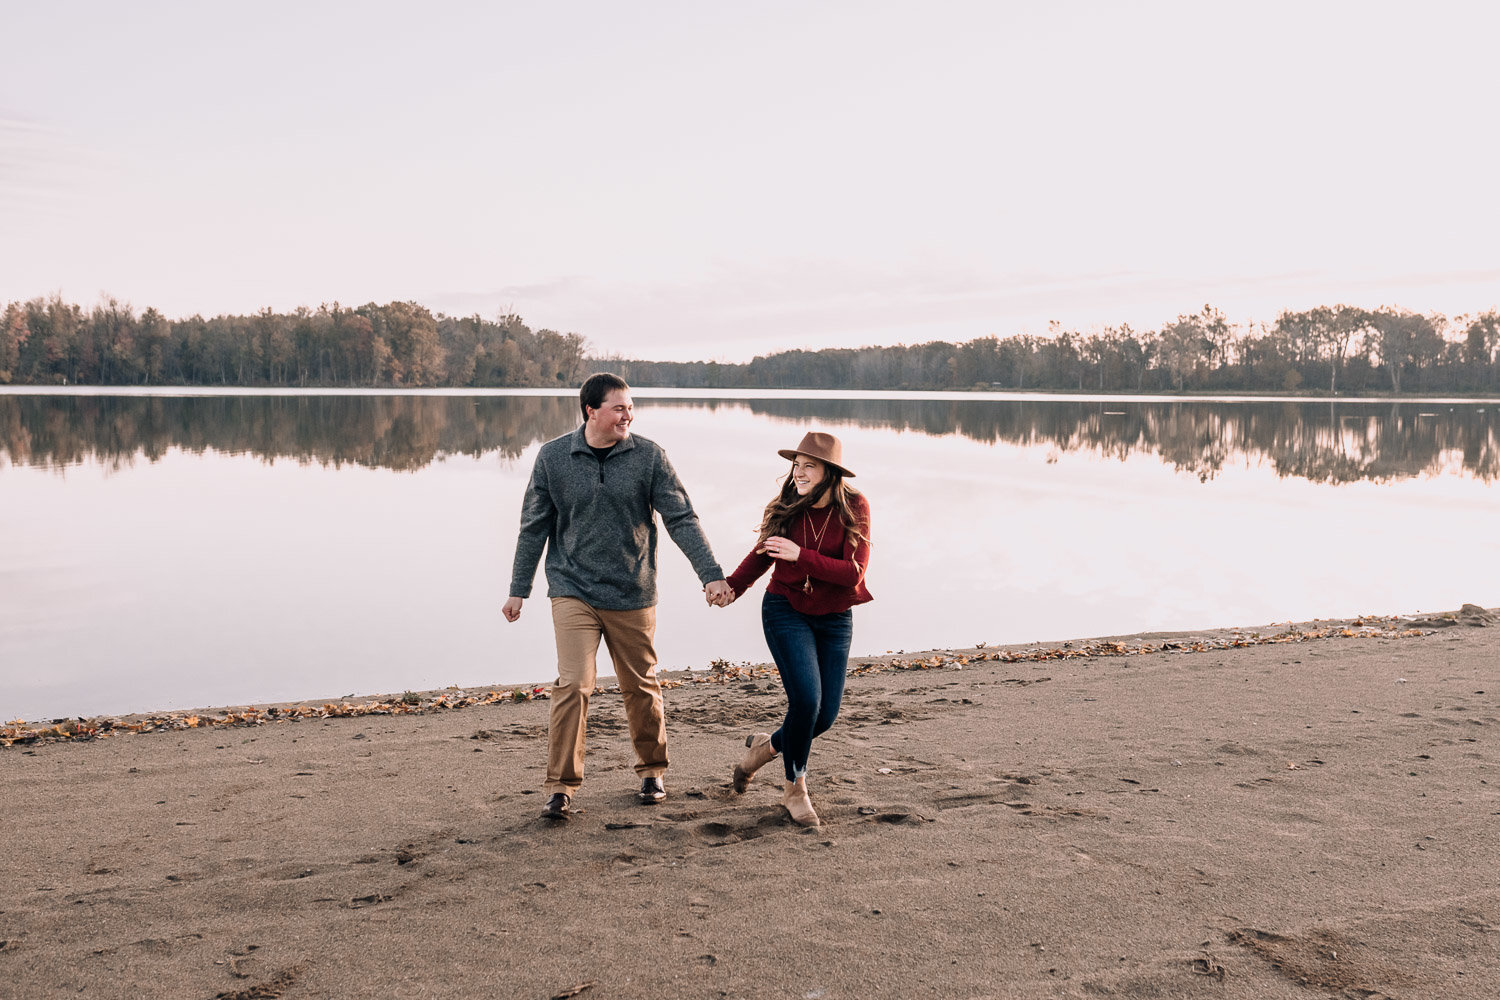 megan-jacob-lake-loramie-downtown-fort-loramie-engagement-photography-24